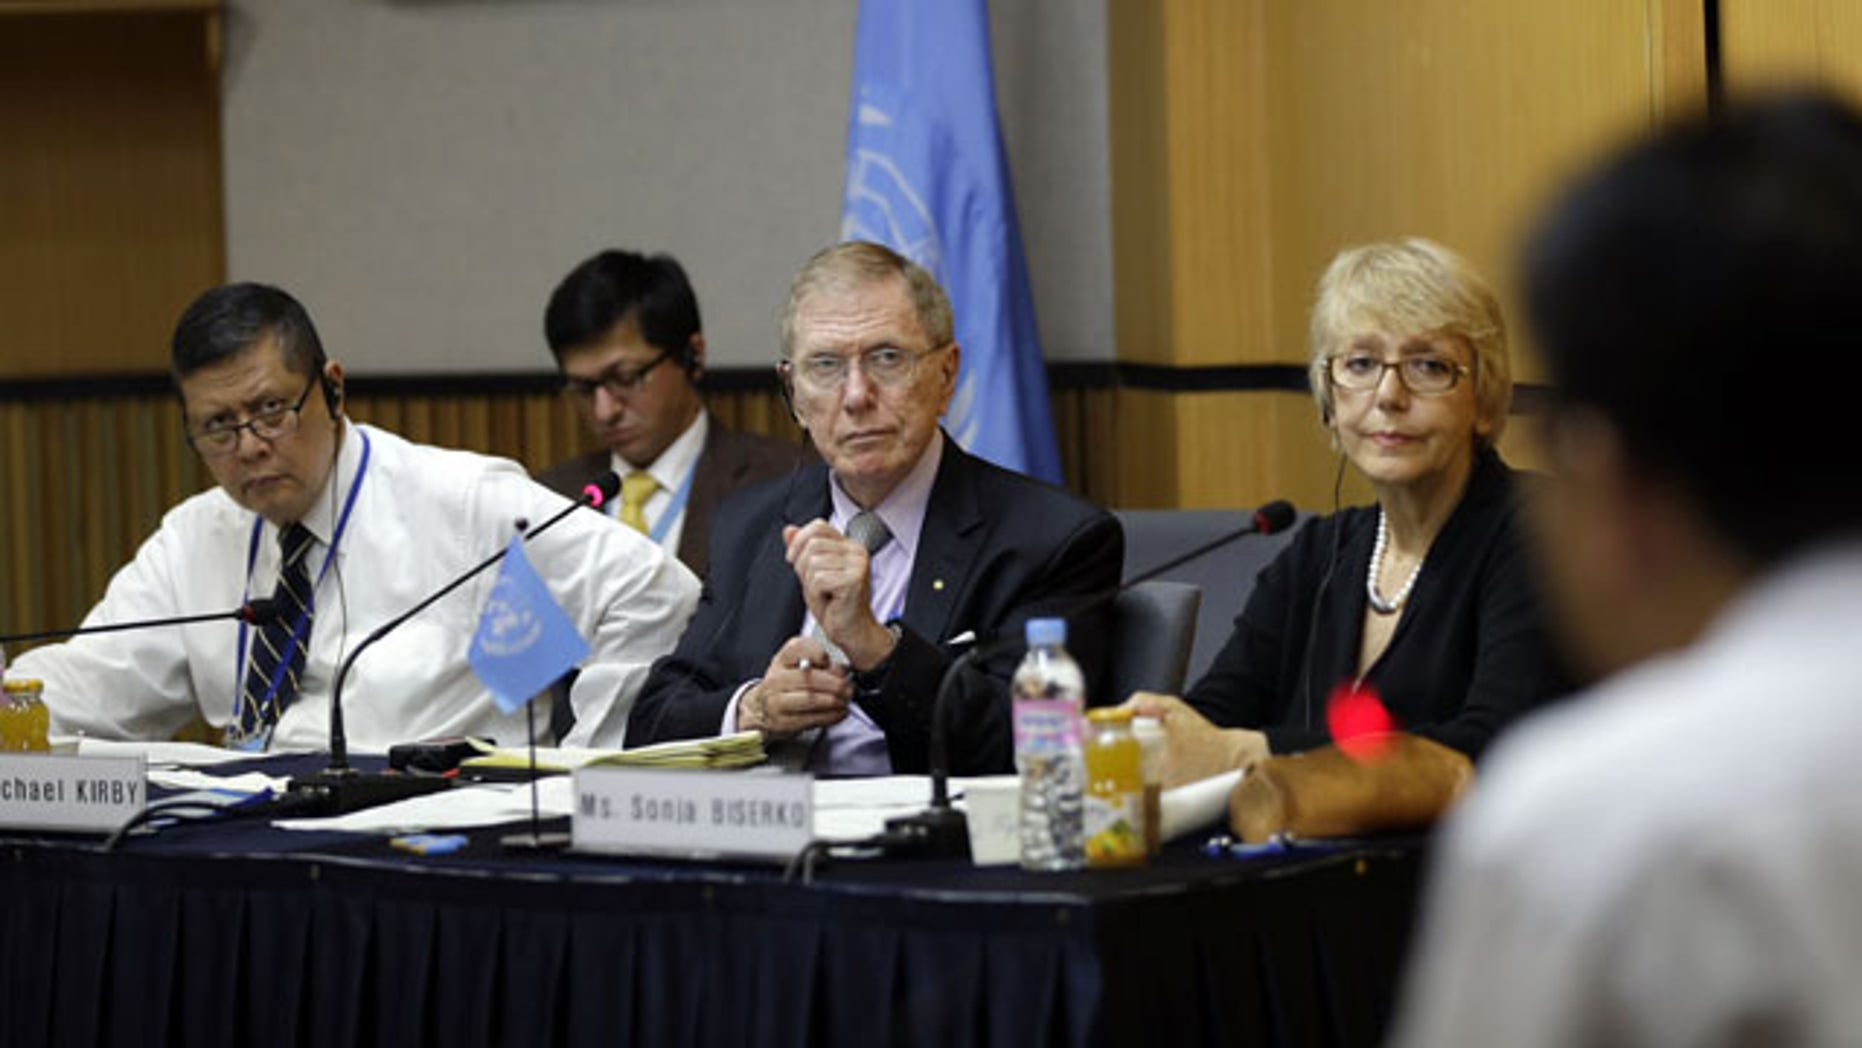 August 21, 2013: Michael Donald Kirby, center, the chairman of the U.N. commission of Inquiry on human rights in North Korea, listens to Ahn Myung-chul, right, who worked as a guard and driver at several political prisoner camps in the 1990s before defecting to south, during the U.N. hearing in Seoul, South Korea.